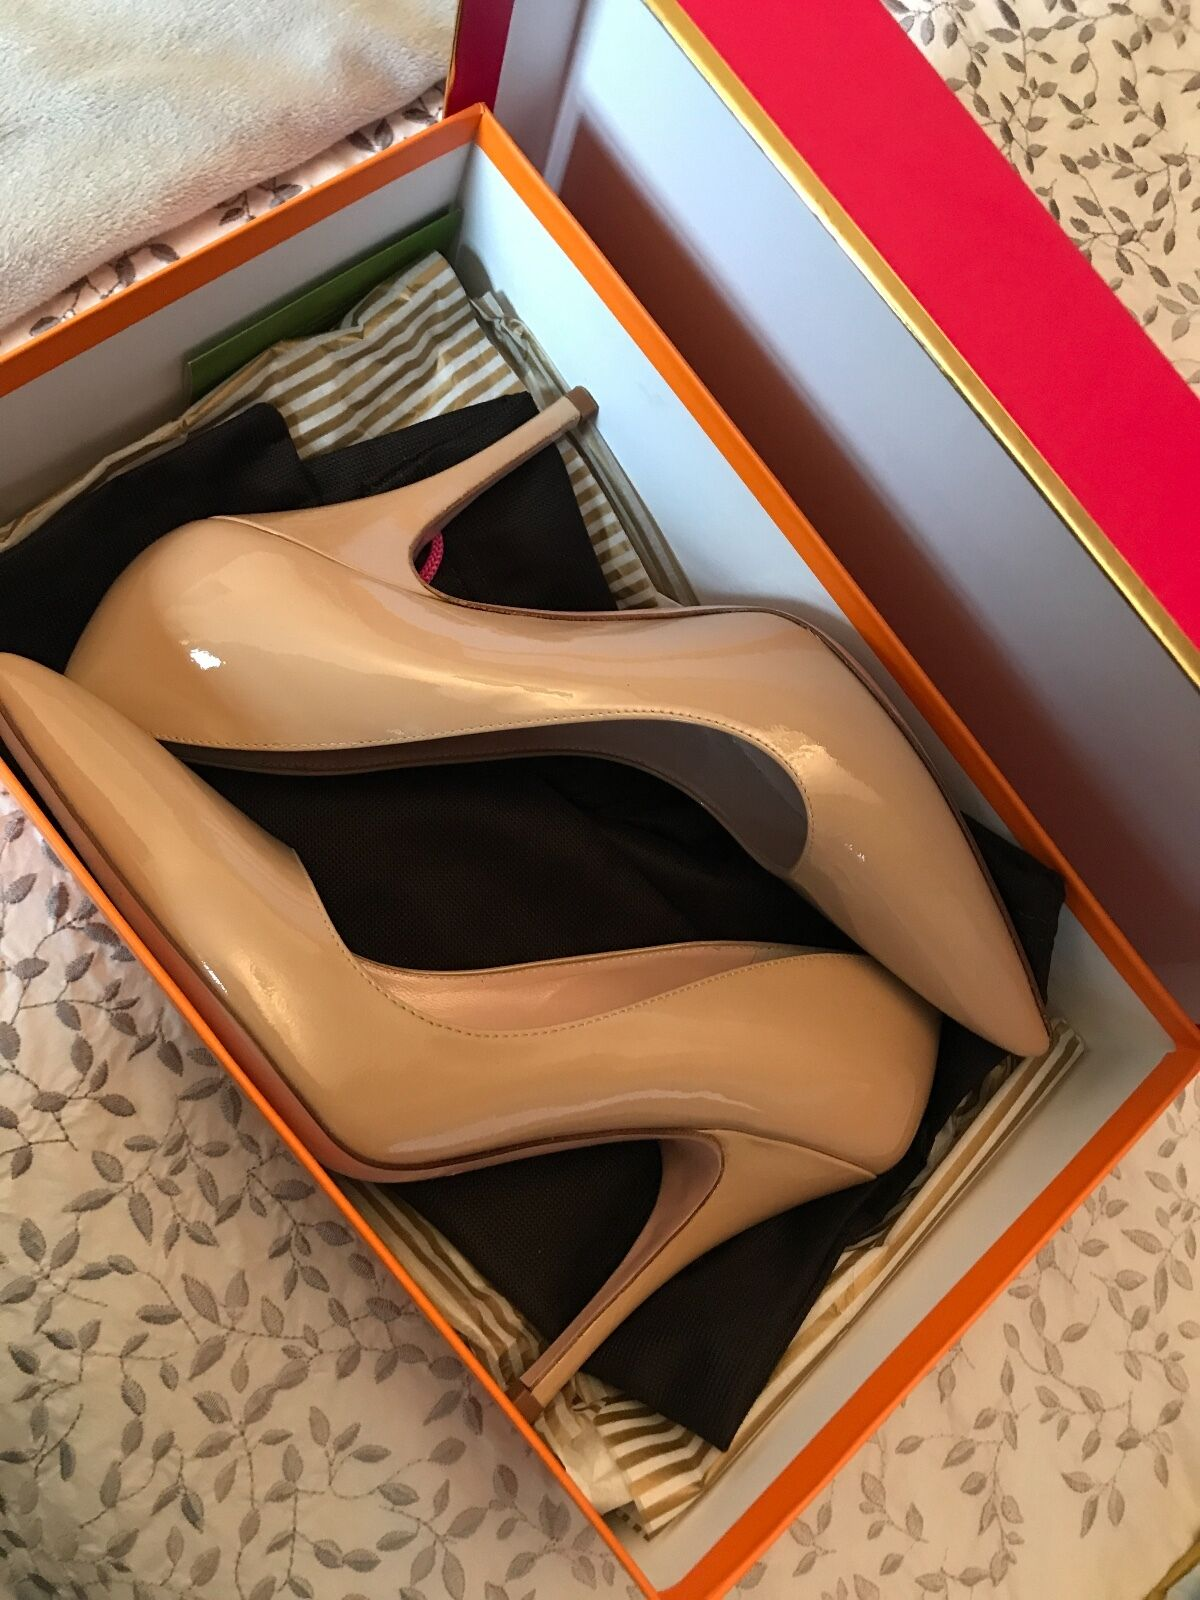 Kate Spade patent patent patent leather nude heels never been worn brand new in box. UKGröße6.5 da6377